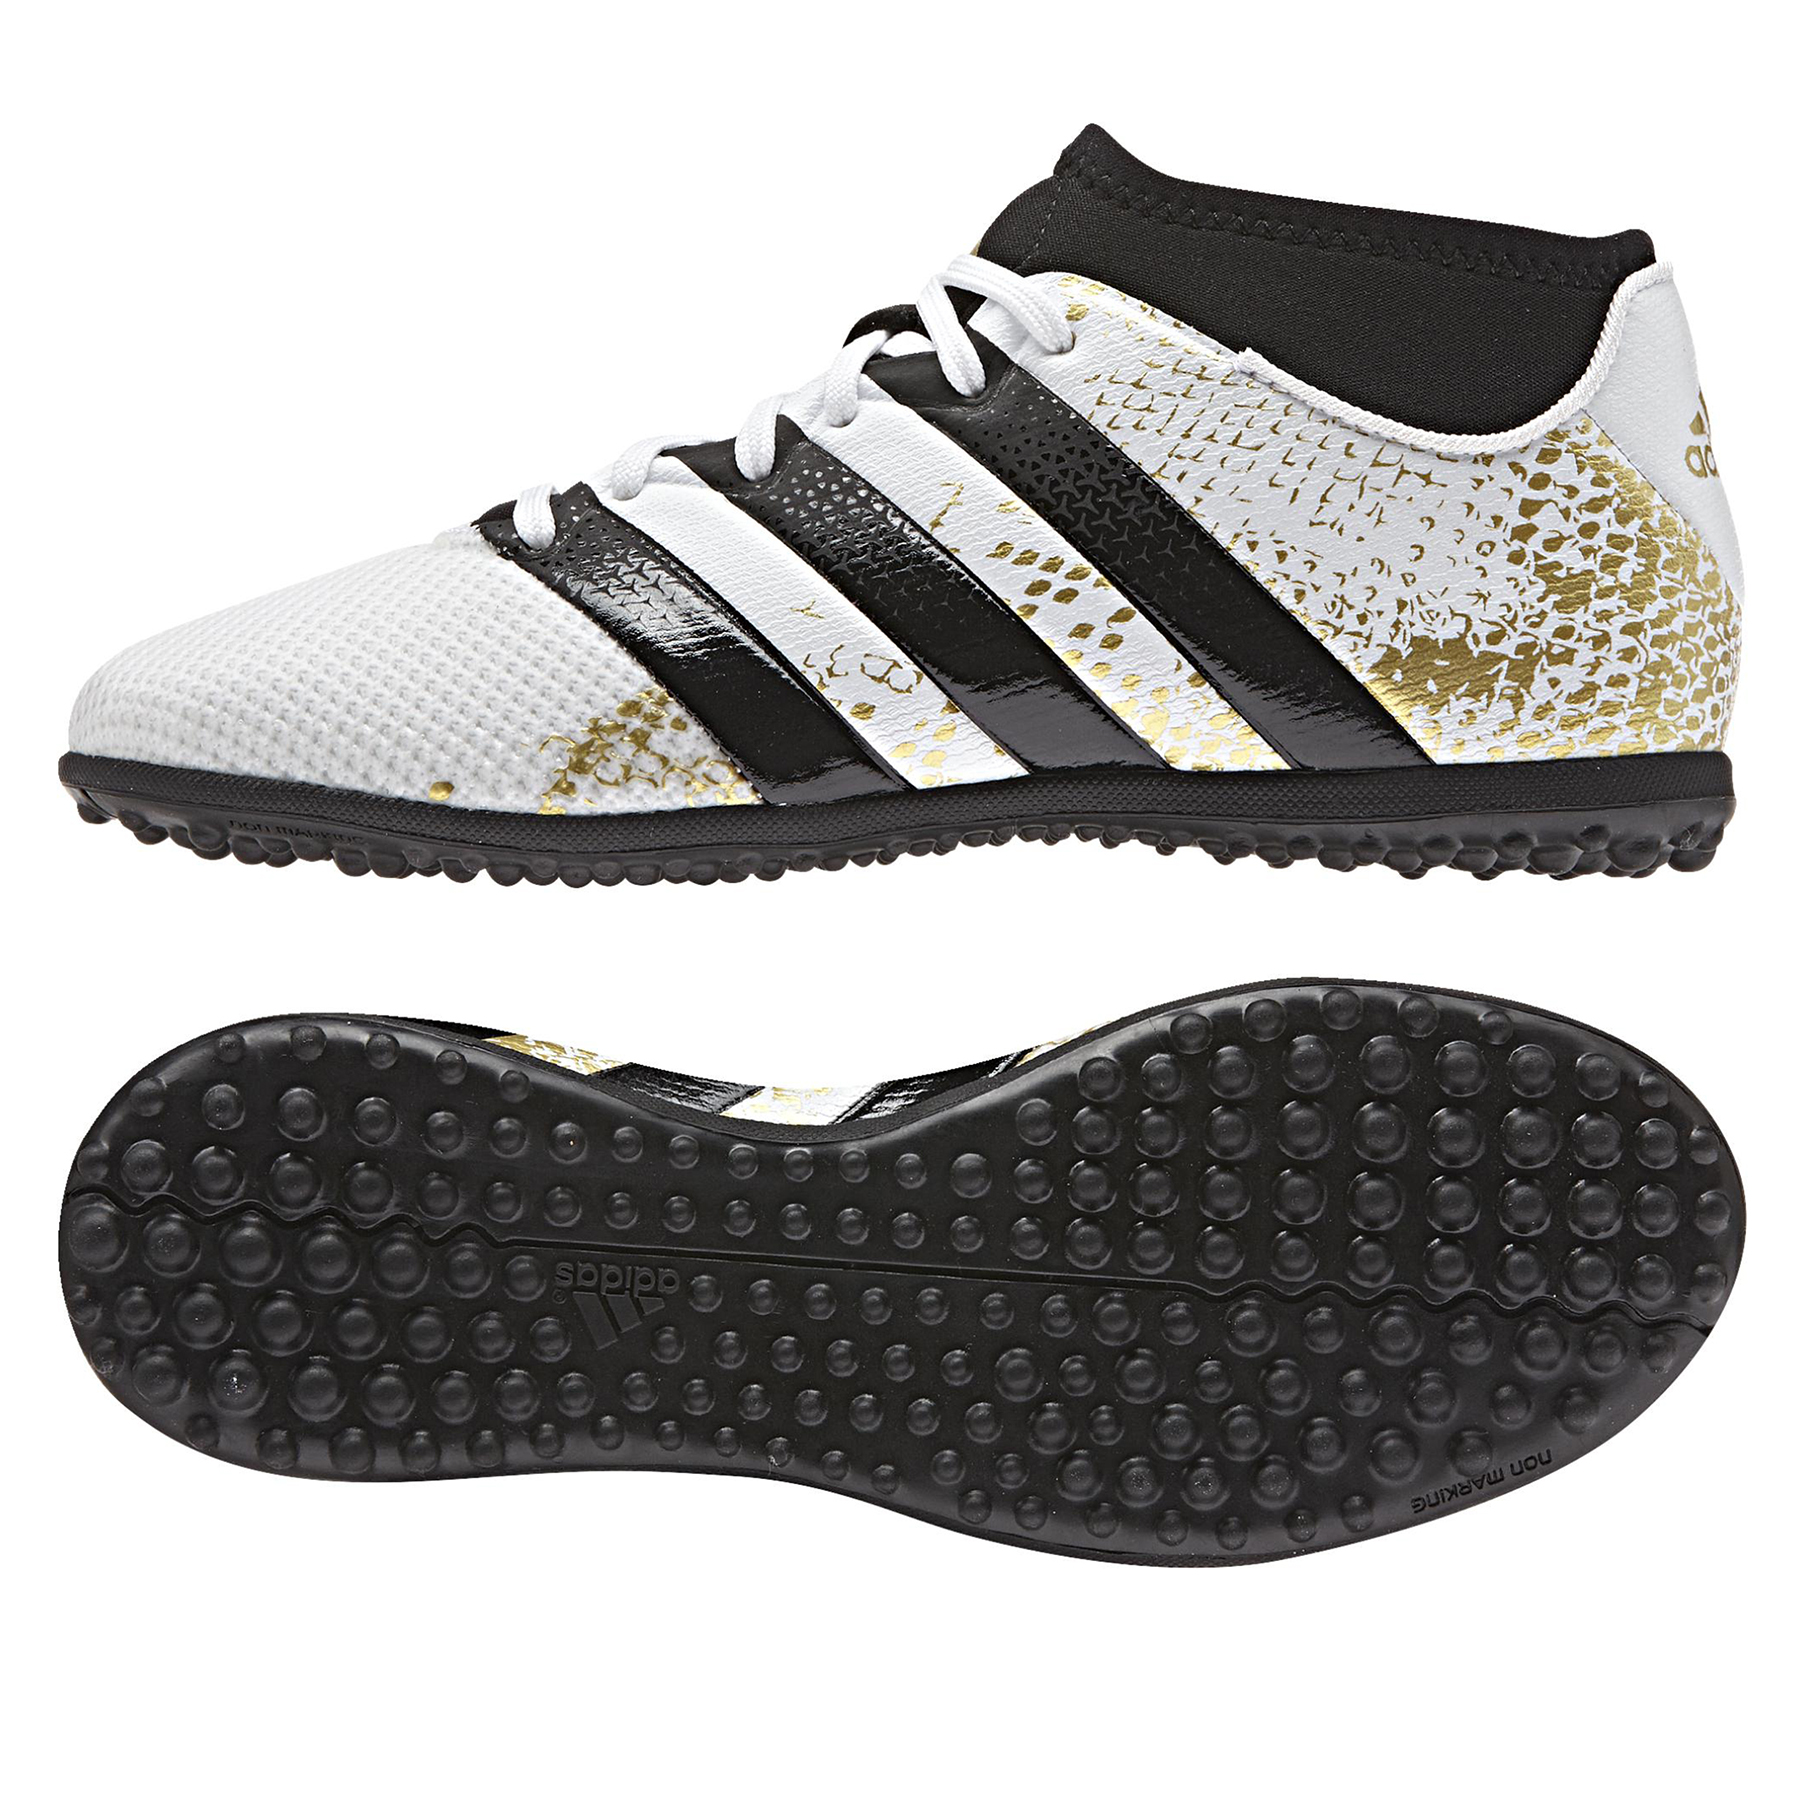 adidas Ace 16.3 PrimeMesh Astroturf Trainers - White/Core Black/Gold M